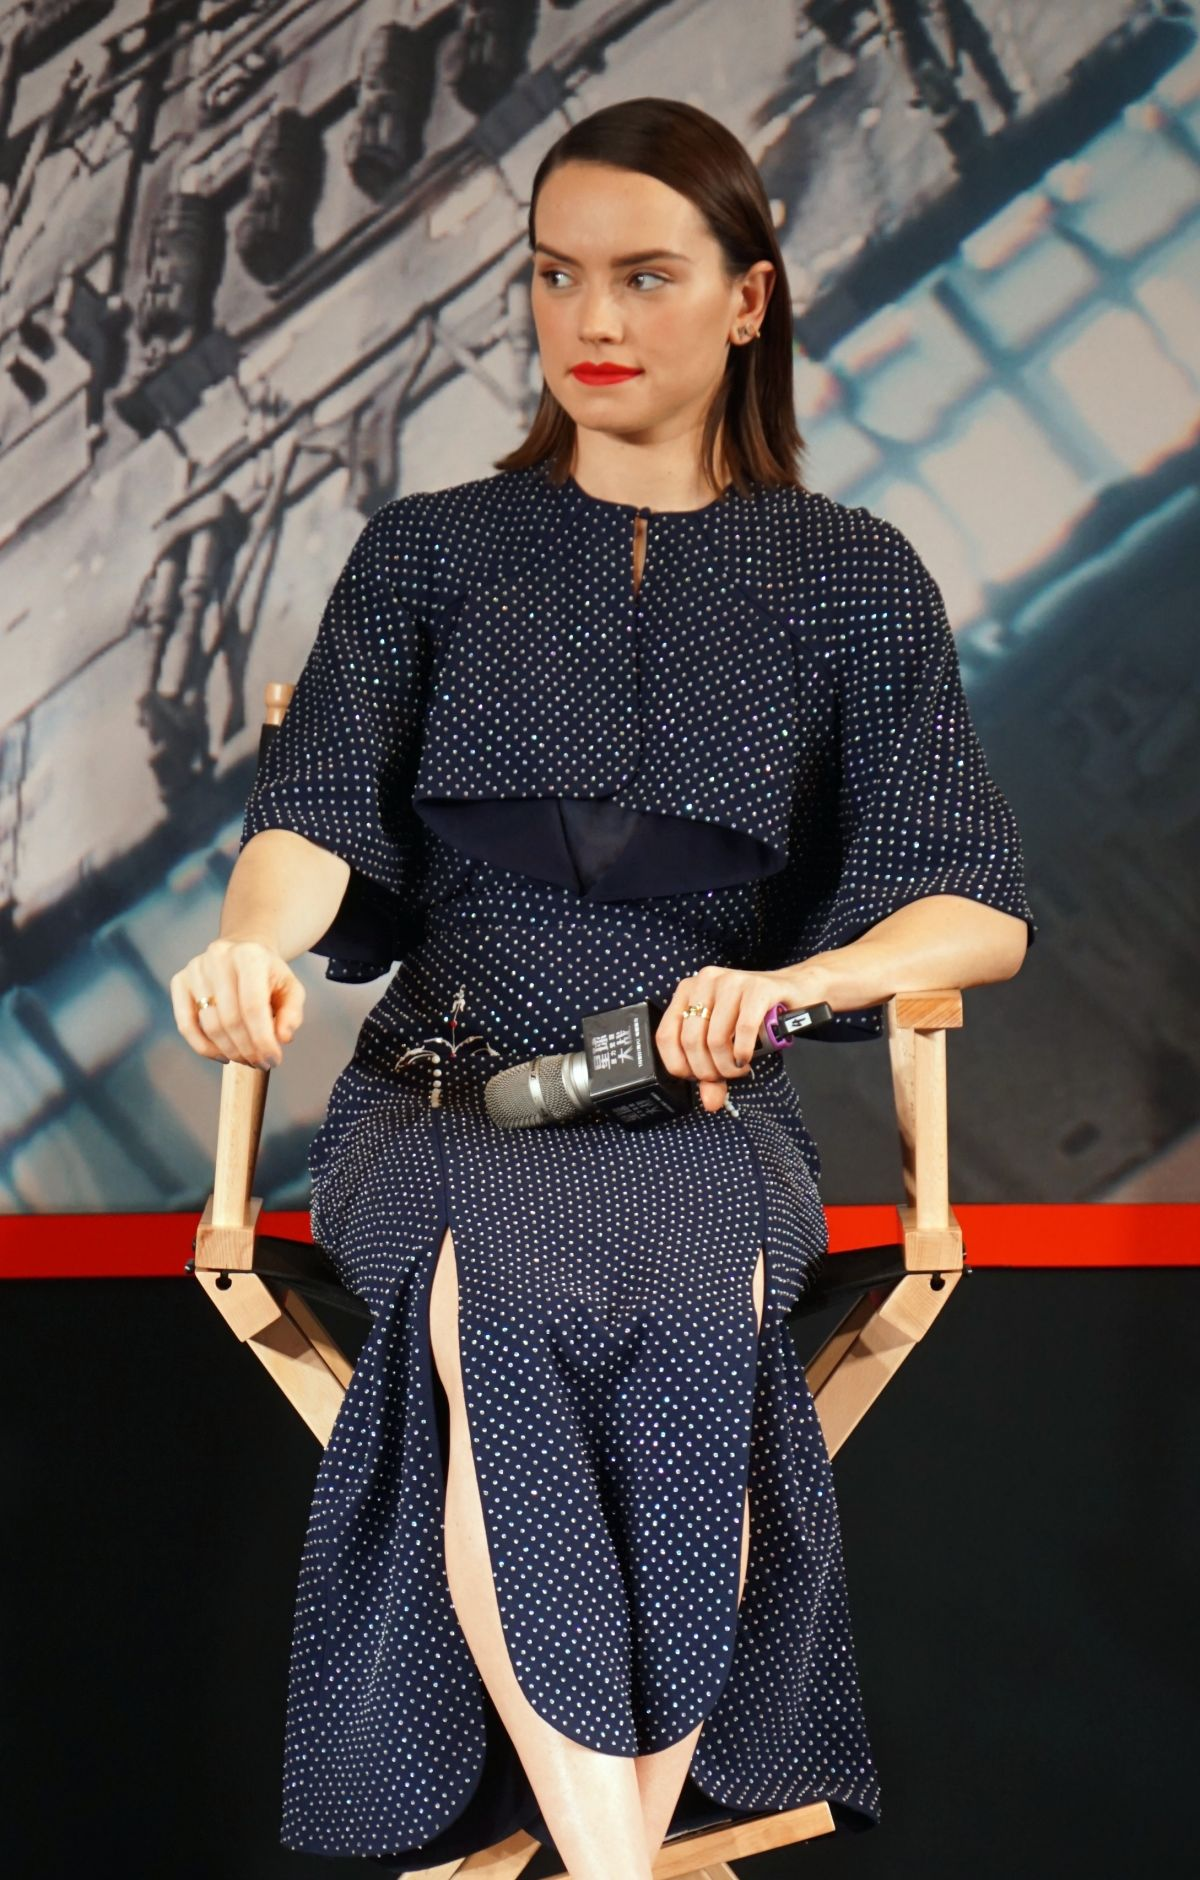 DAISY RIDLEY at Star Wars: The Force Awakens Photocall in Shangahai 12/28/2015